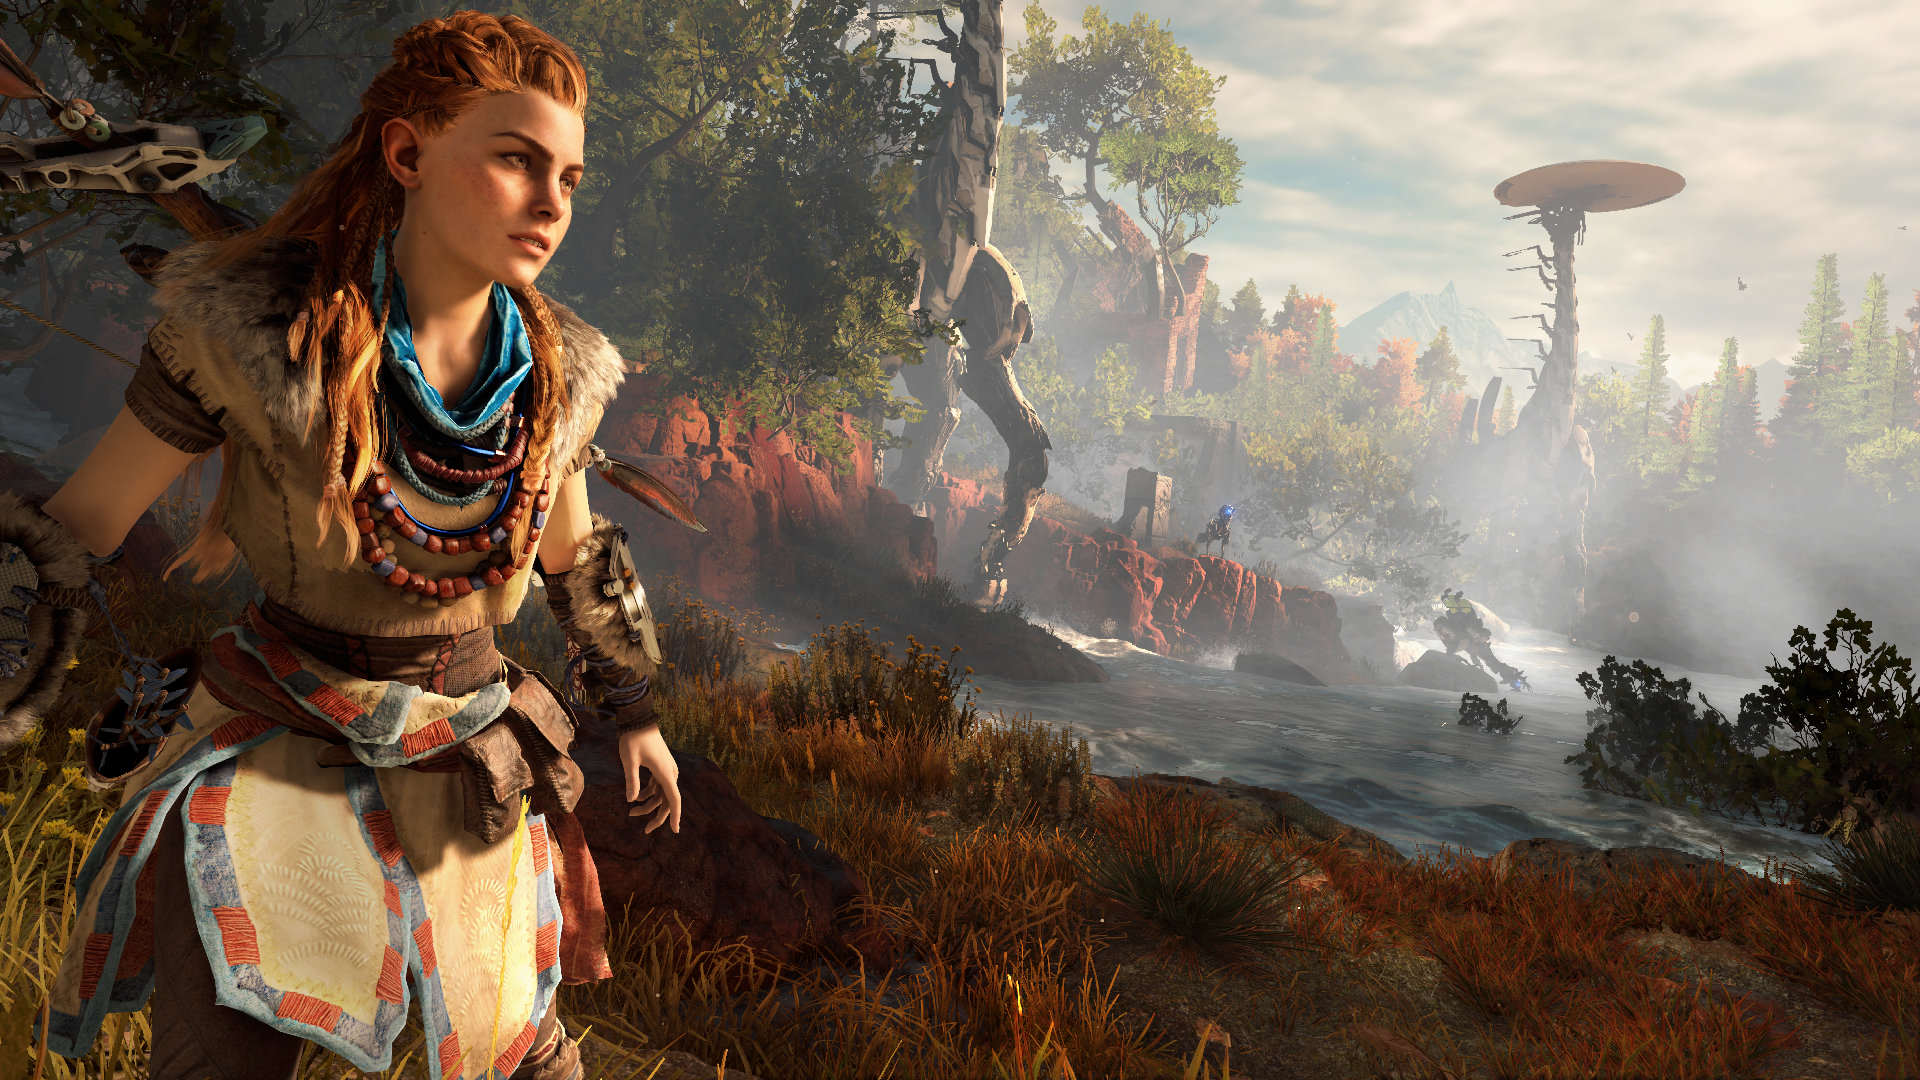 horizon zero dawn screen 04 us 15jun15 Horizon Zero Dawn Gets Eight Minutes Of Breathtaking Footage